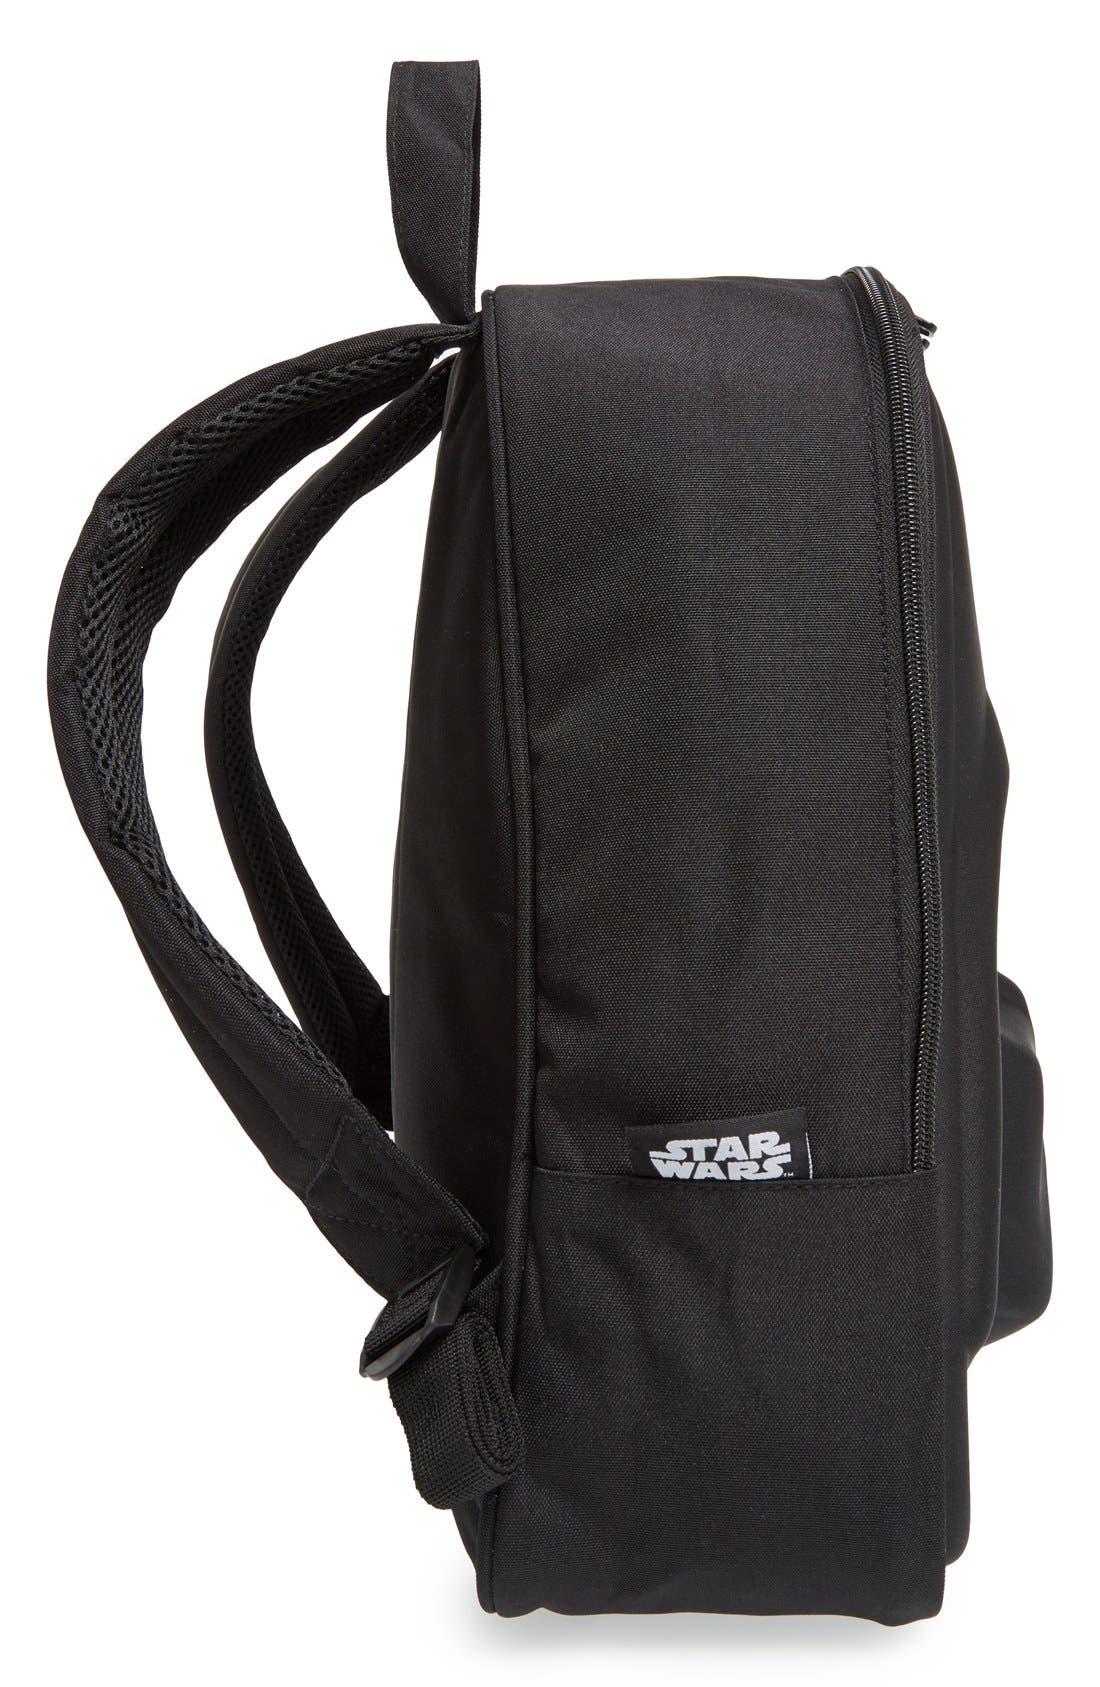 'Star Wars<sup>™</sup> - Darth Vader' Backpack,                             Alternate thumbnail 4, color,